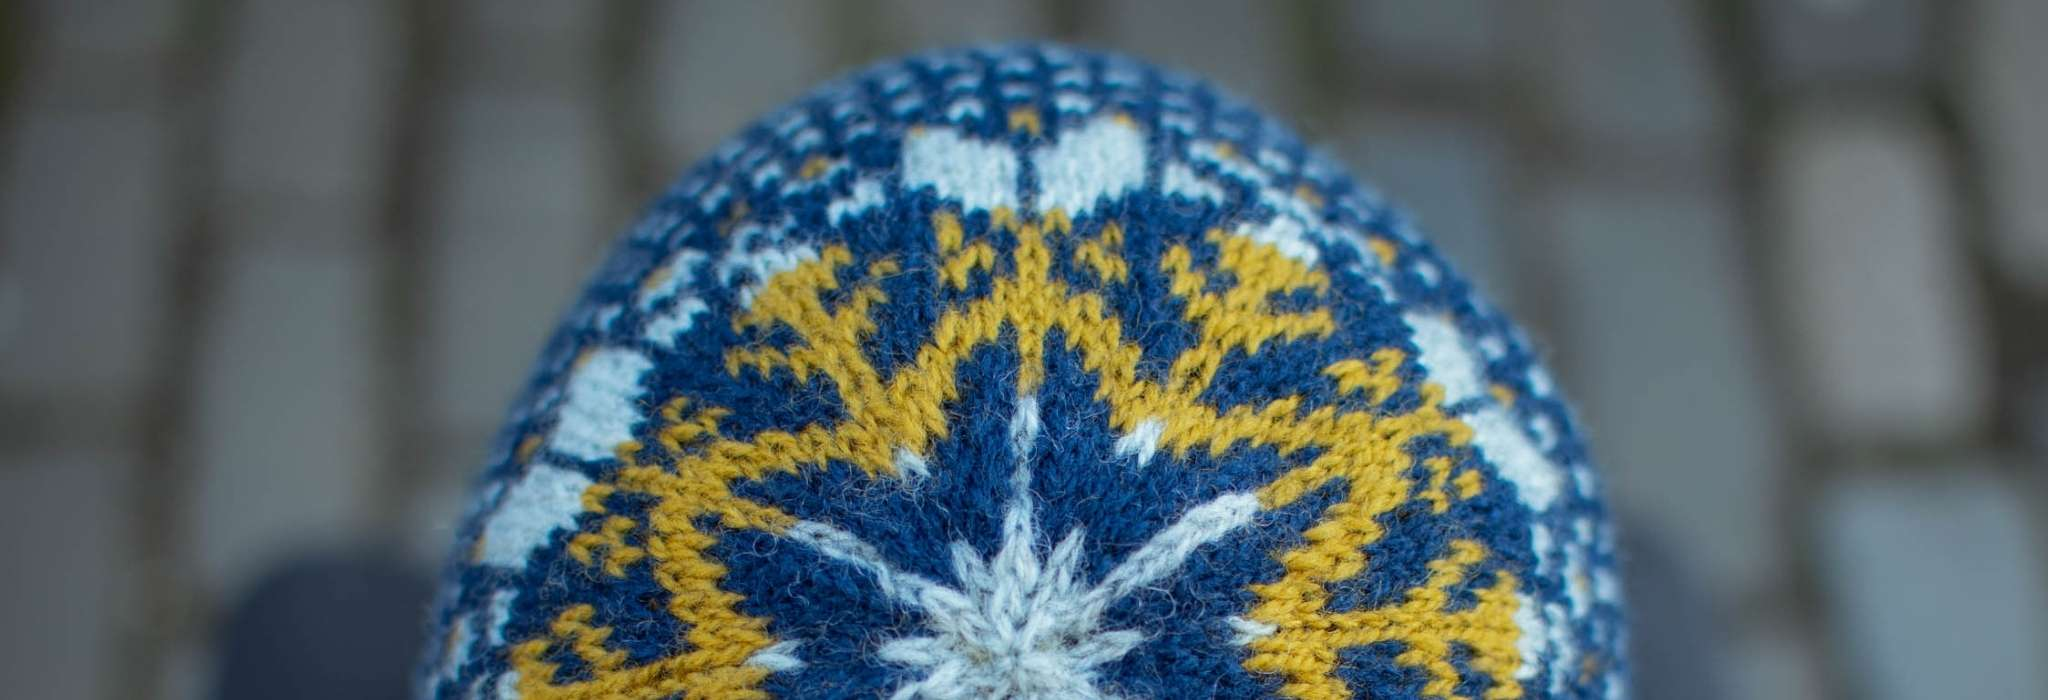 a close up of the crown of a blue, white and gold colourwork hat